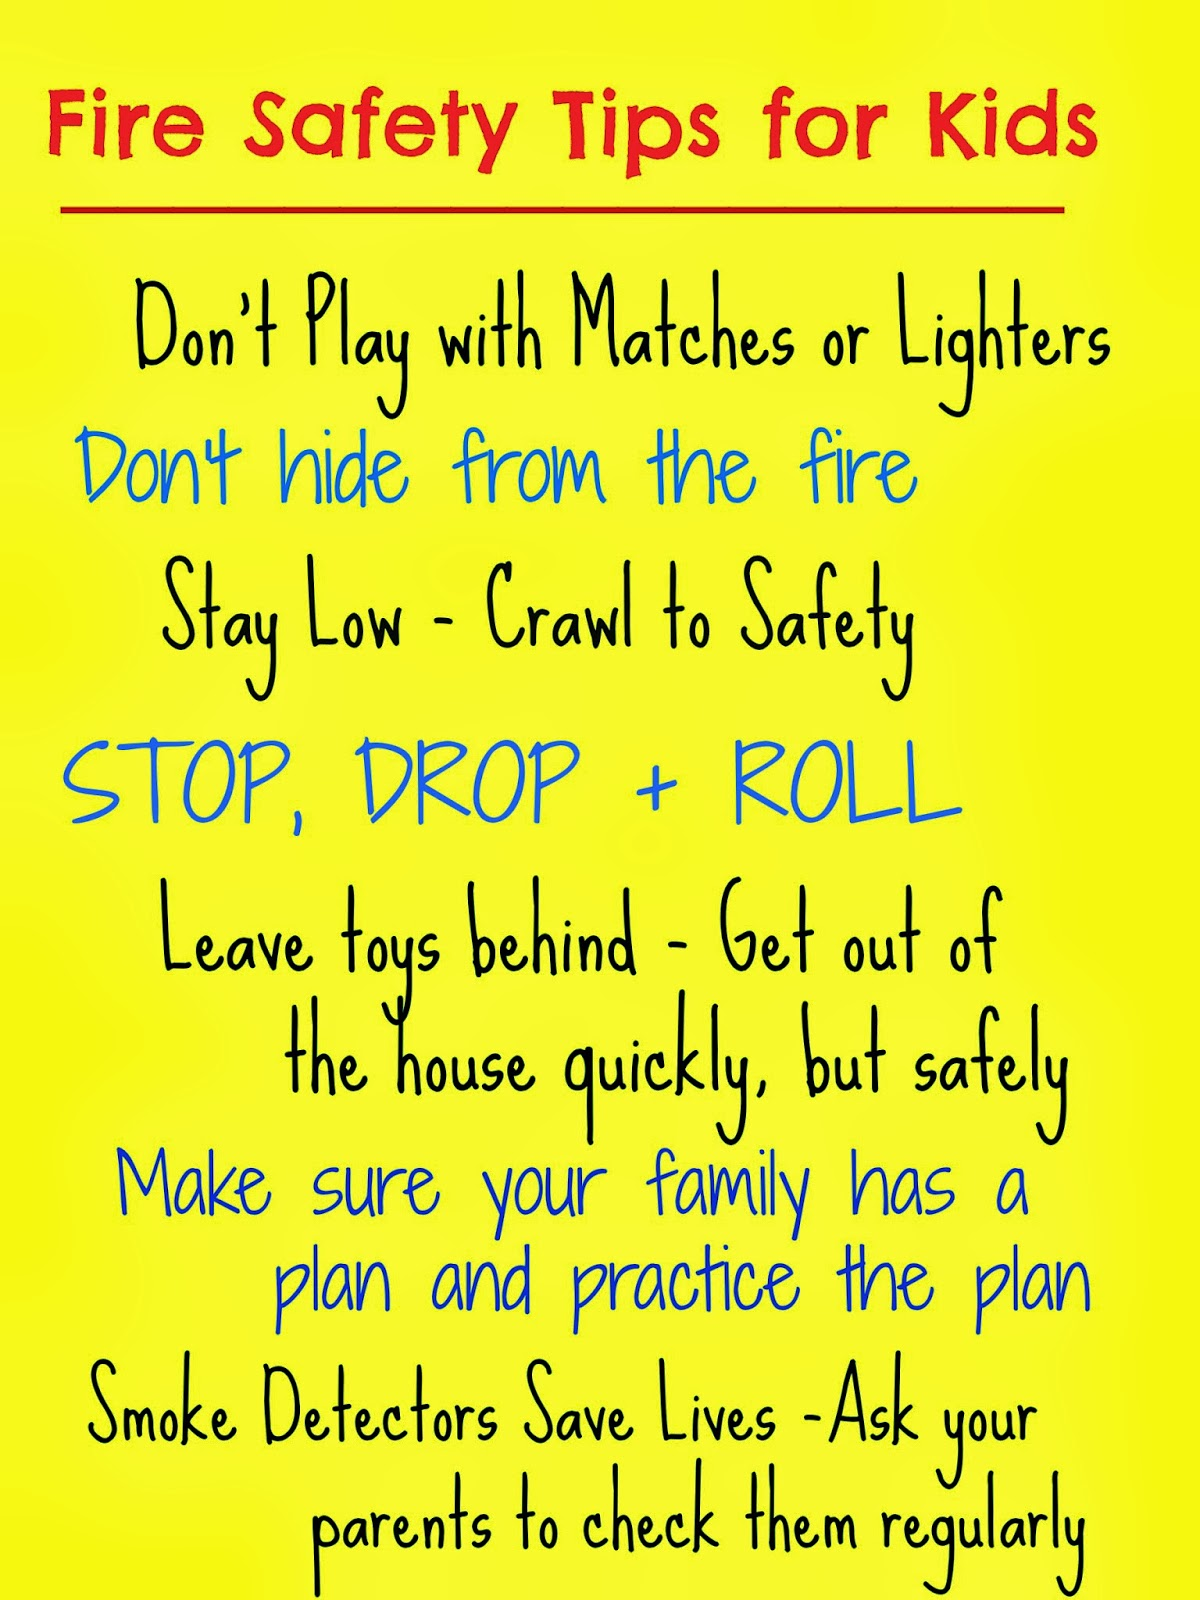 Fire Prevention Week Fire Safety Tips Our Favorite